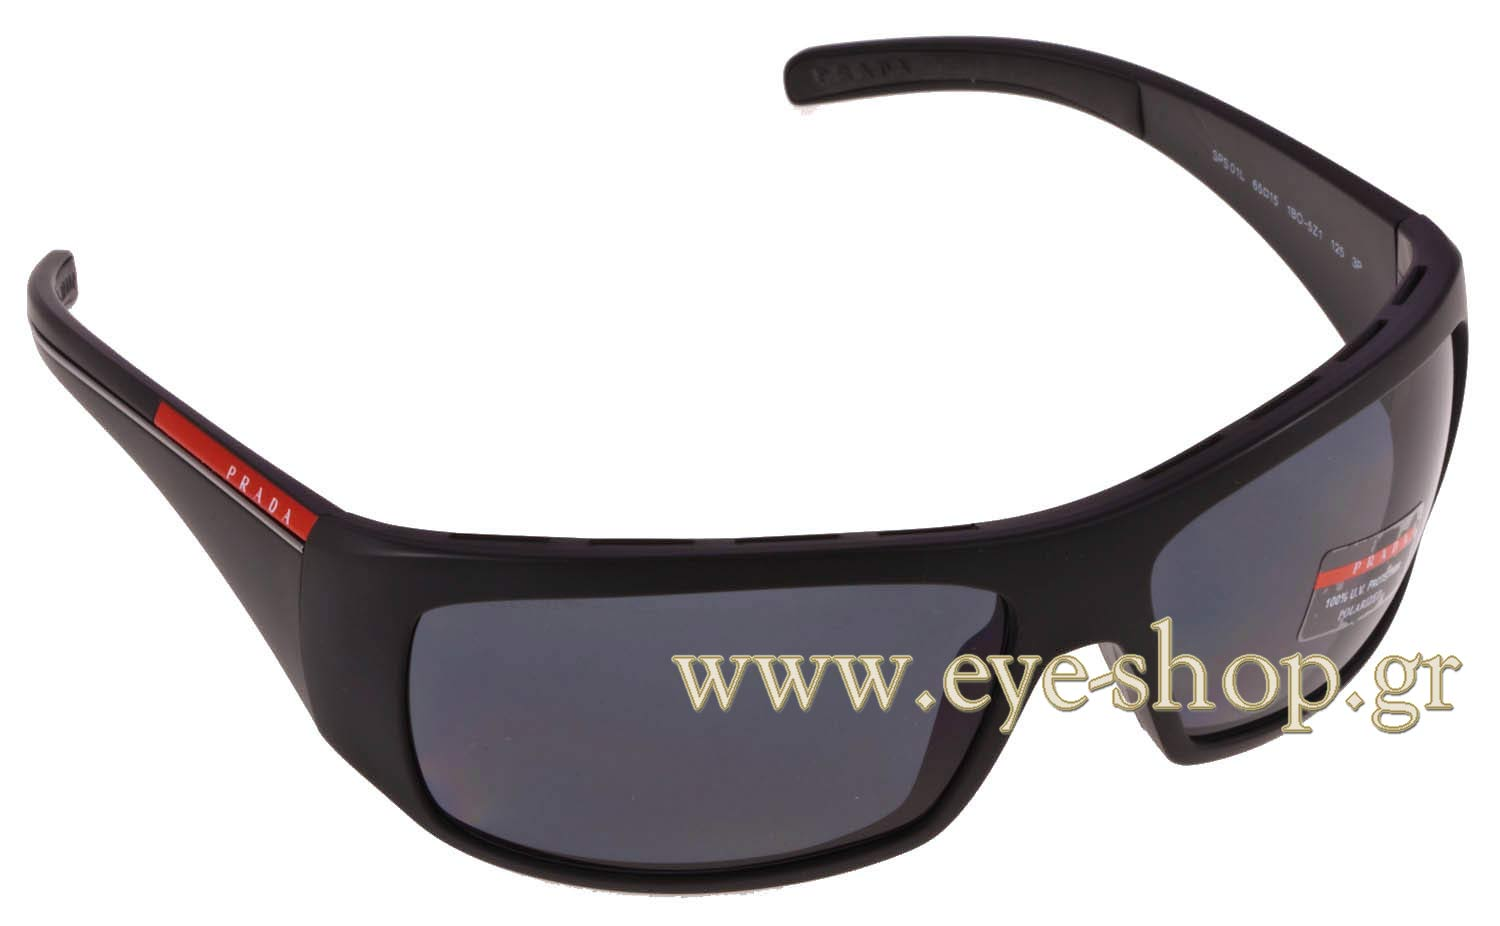 b110205e6f09 BEN-AINSLE WEARING SUNGLASSES PRADA-SPORT-01LS sunglasses 1BO5Z1 polarized  - 65